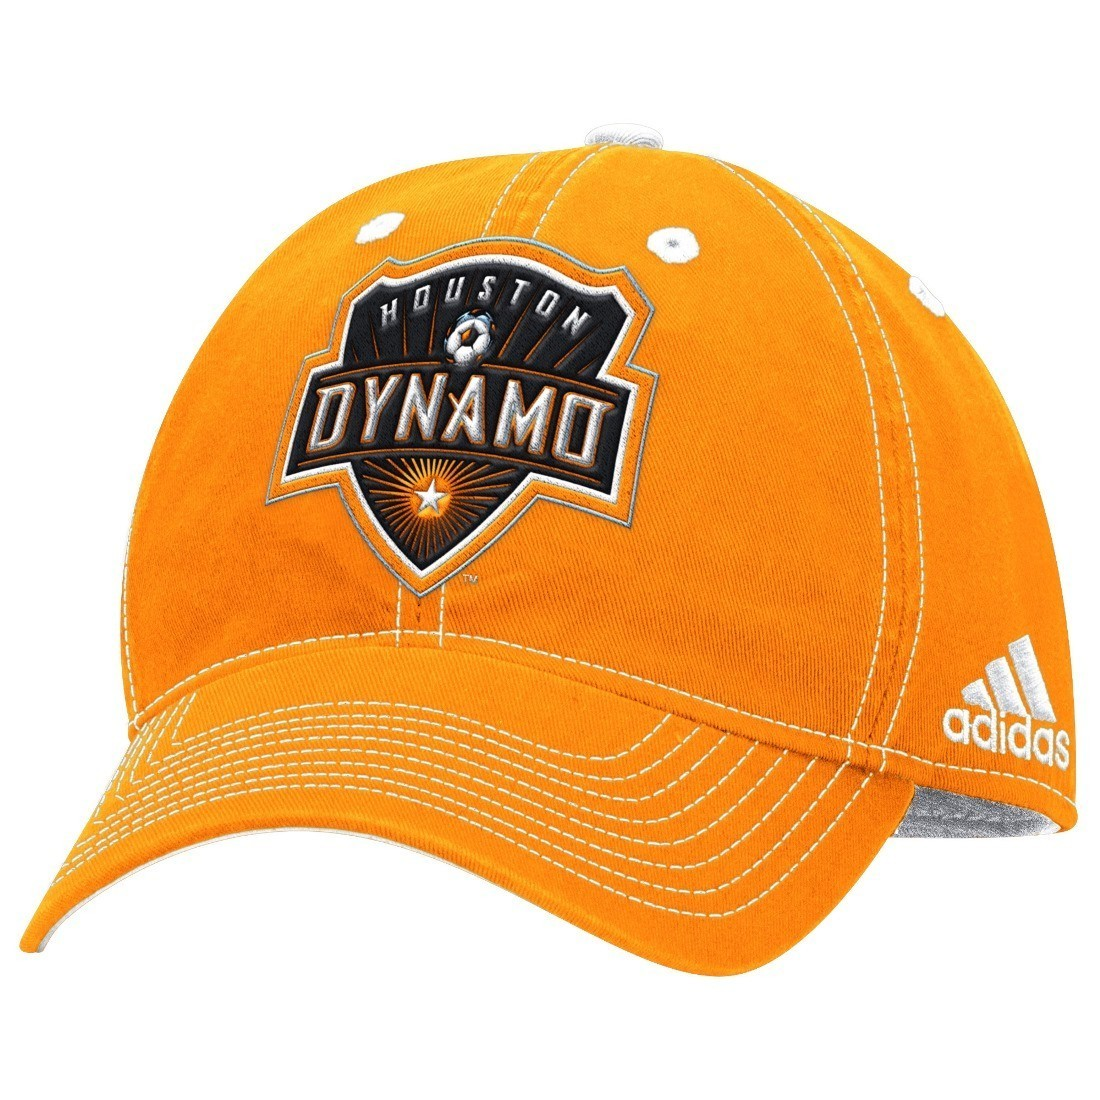 low priced 5ad45 35ac6 Details about Houston Dynamo Adidas MLS